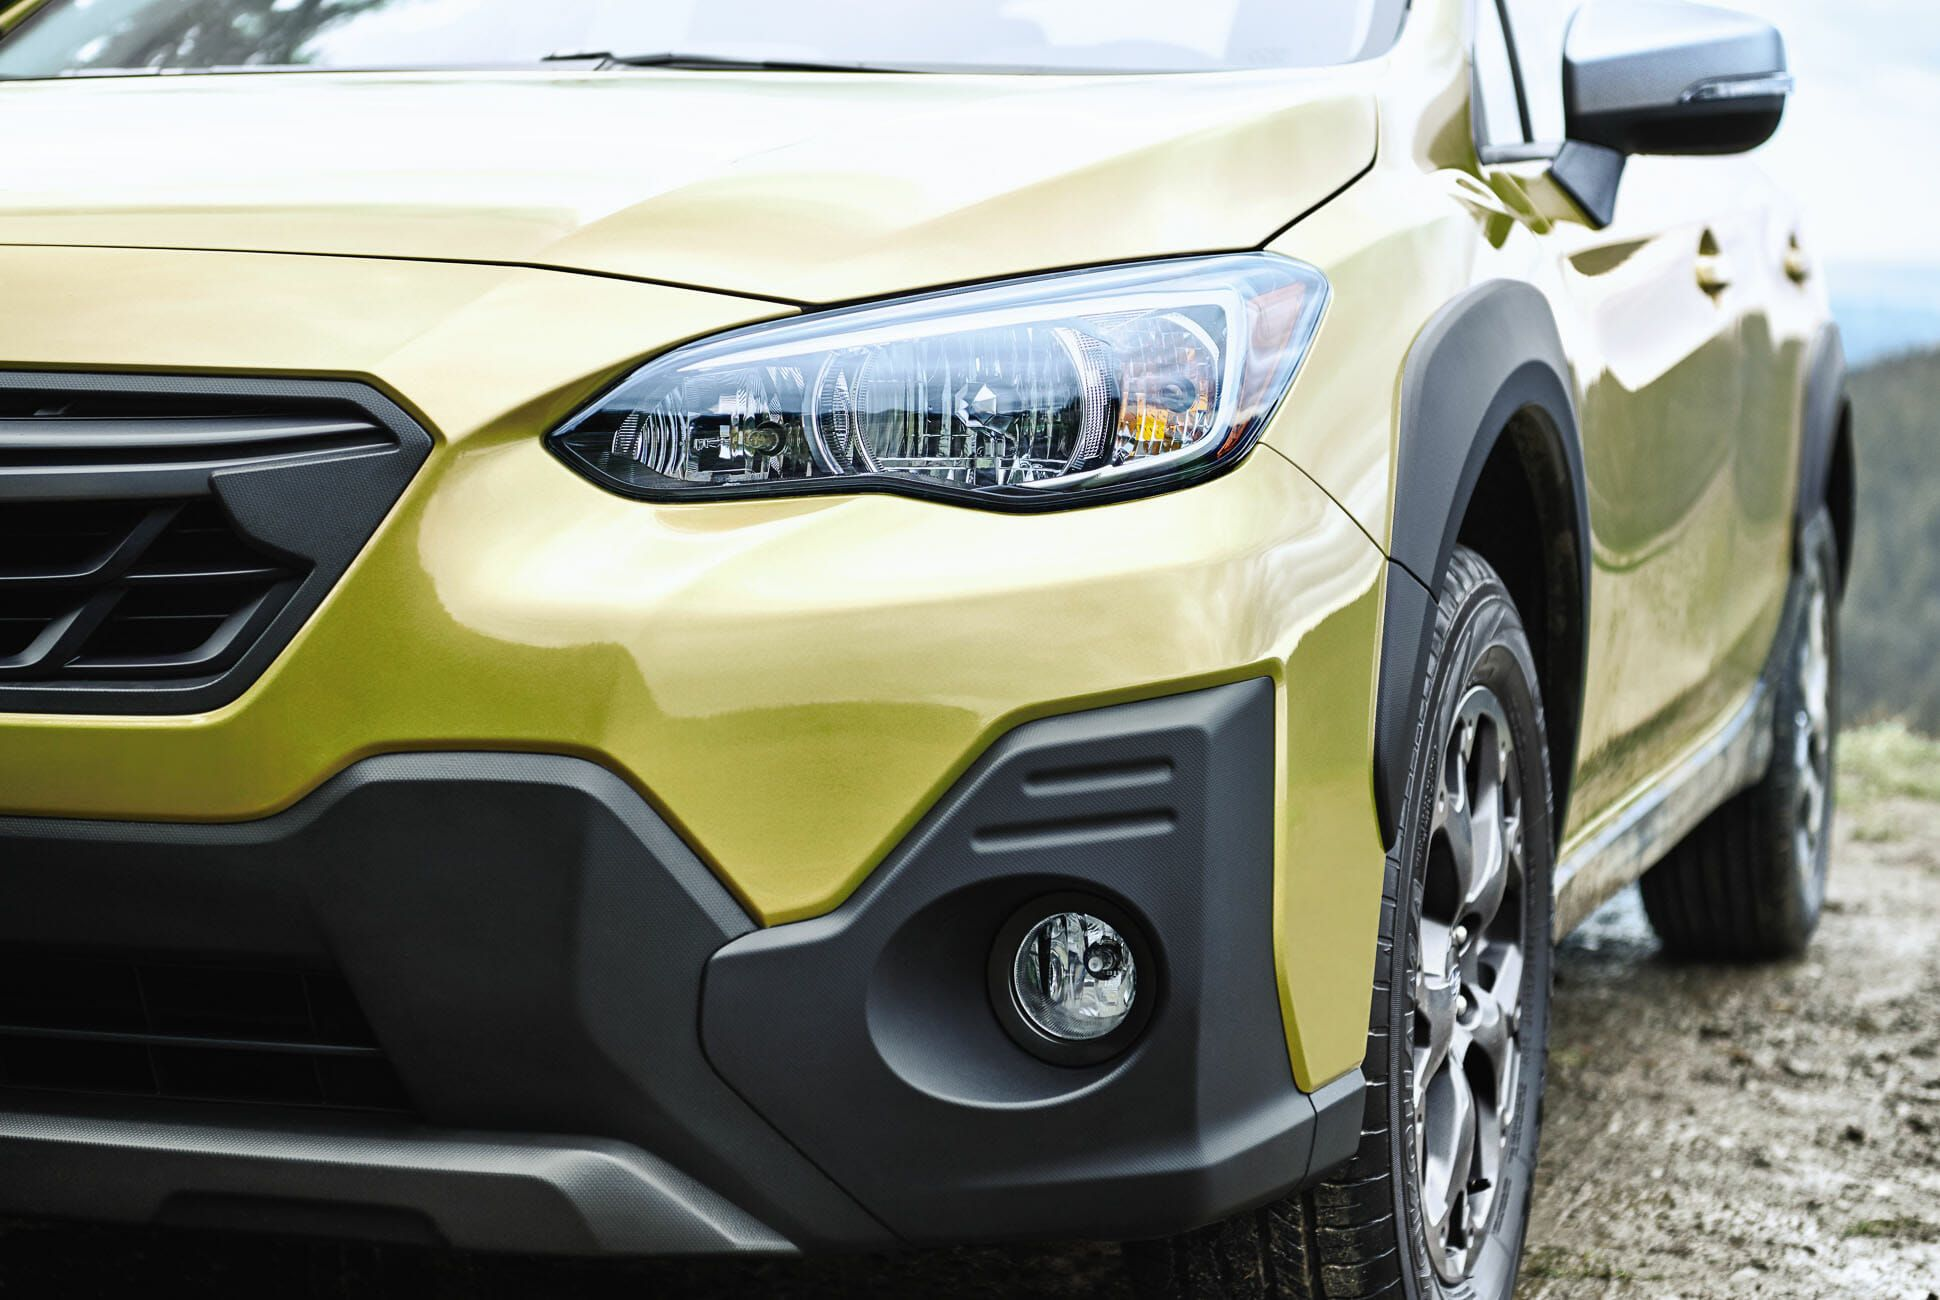 Subaru Seems To Have Some Massive Changes Planned To Its Lineup